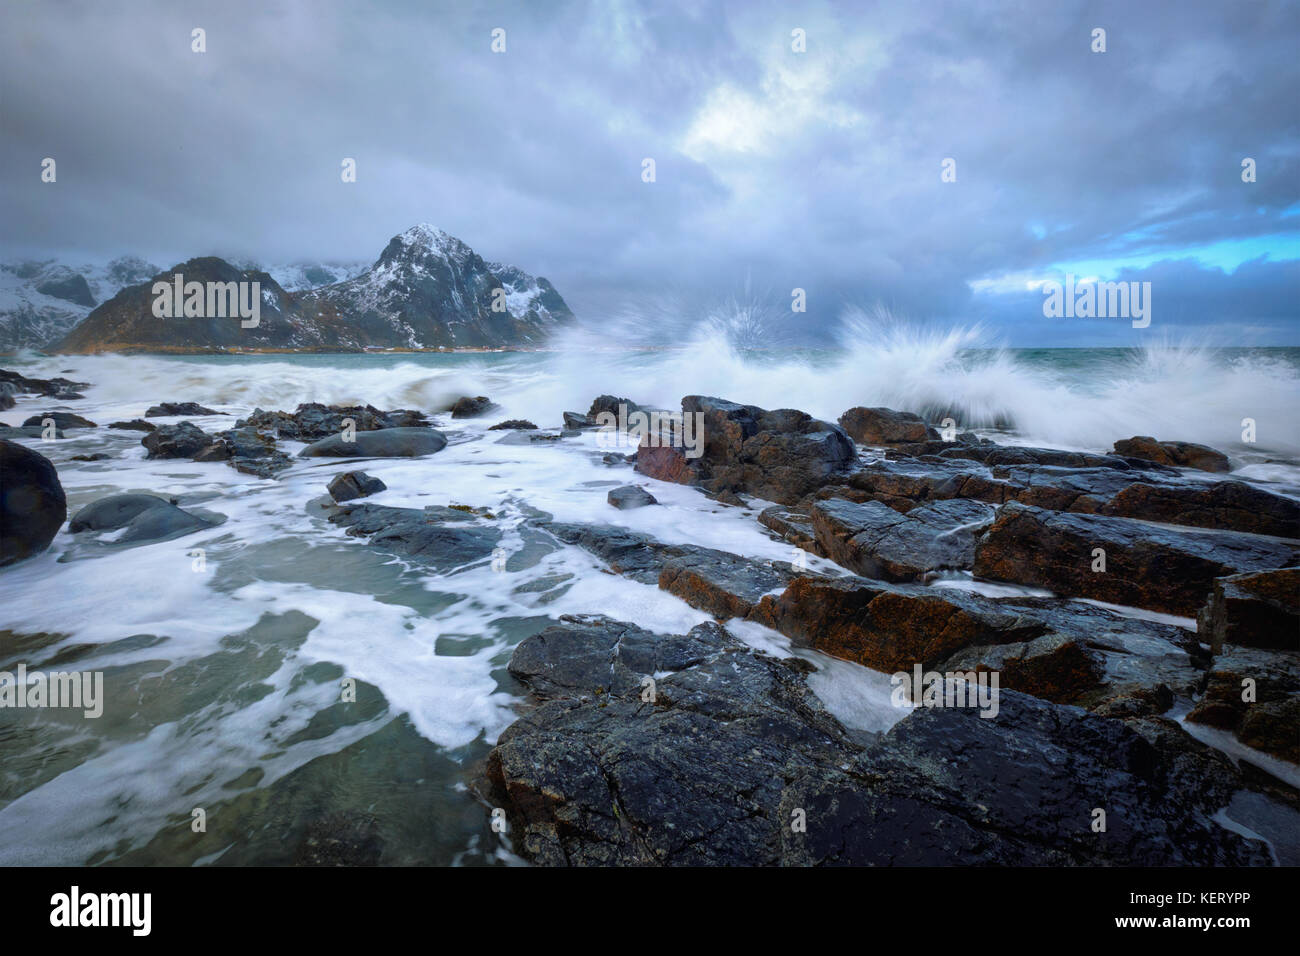 Rocky coast of fjord in Norway - Stock Image